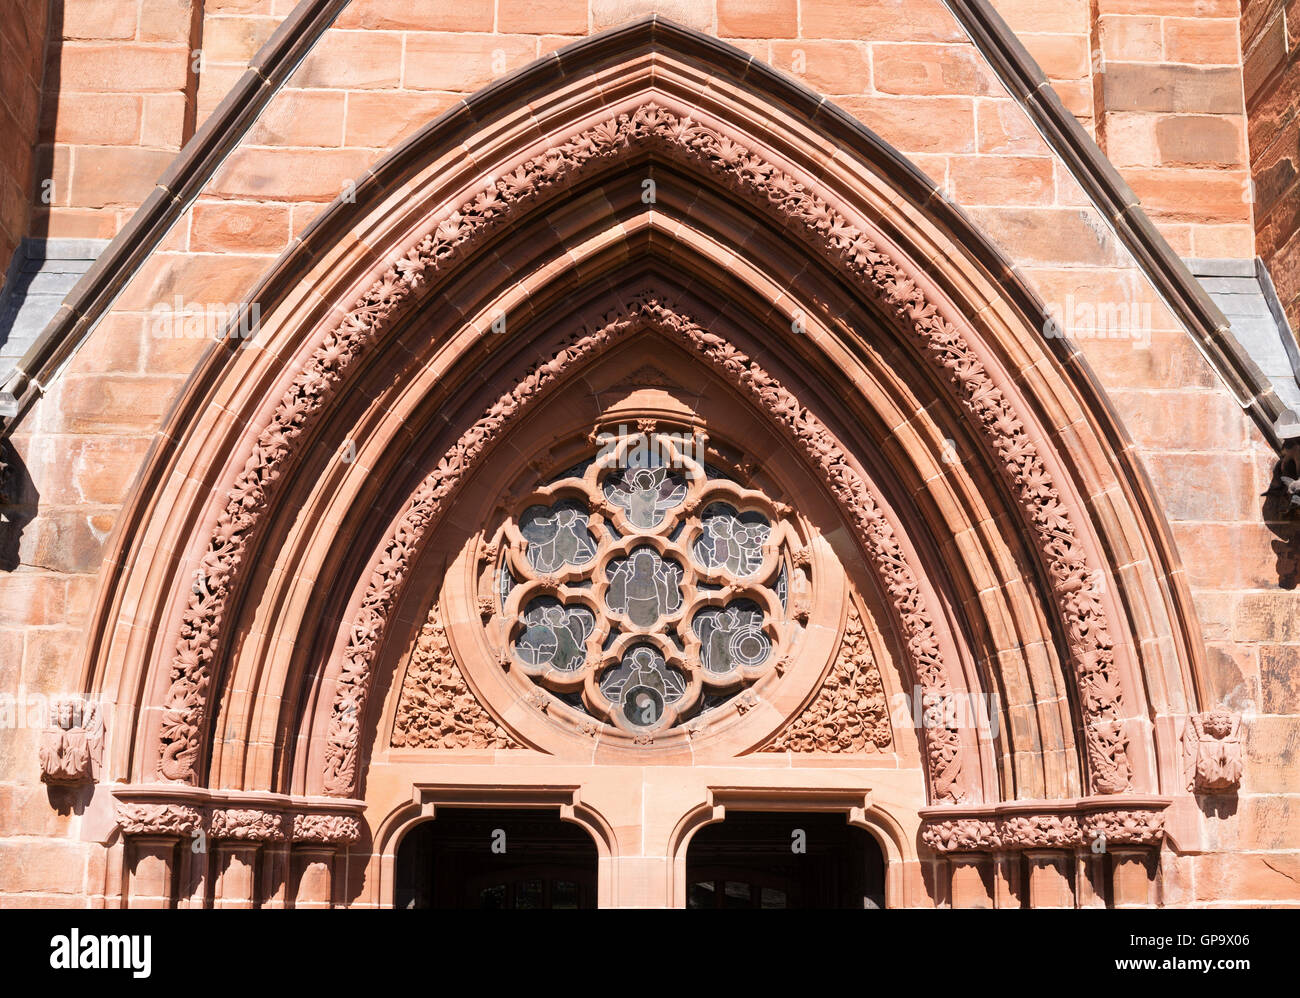 Detailed view of the window and arch above the entrance to Carlisle cathedral, Cumbria, England, UK - Stock Image